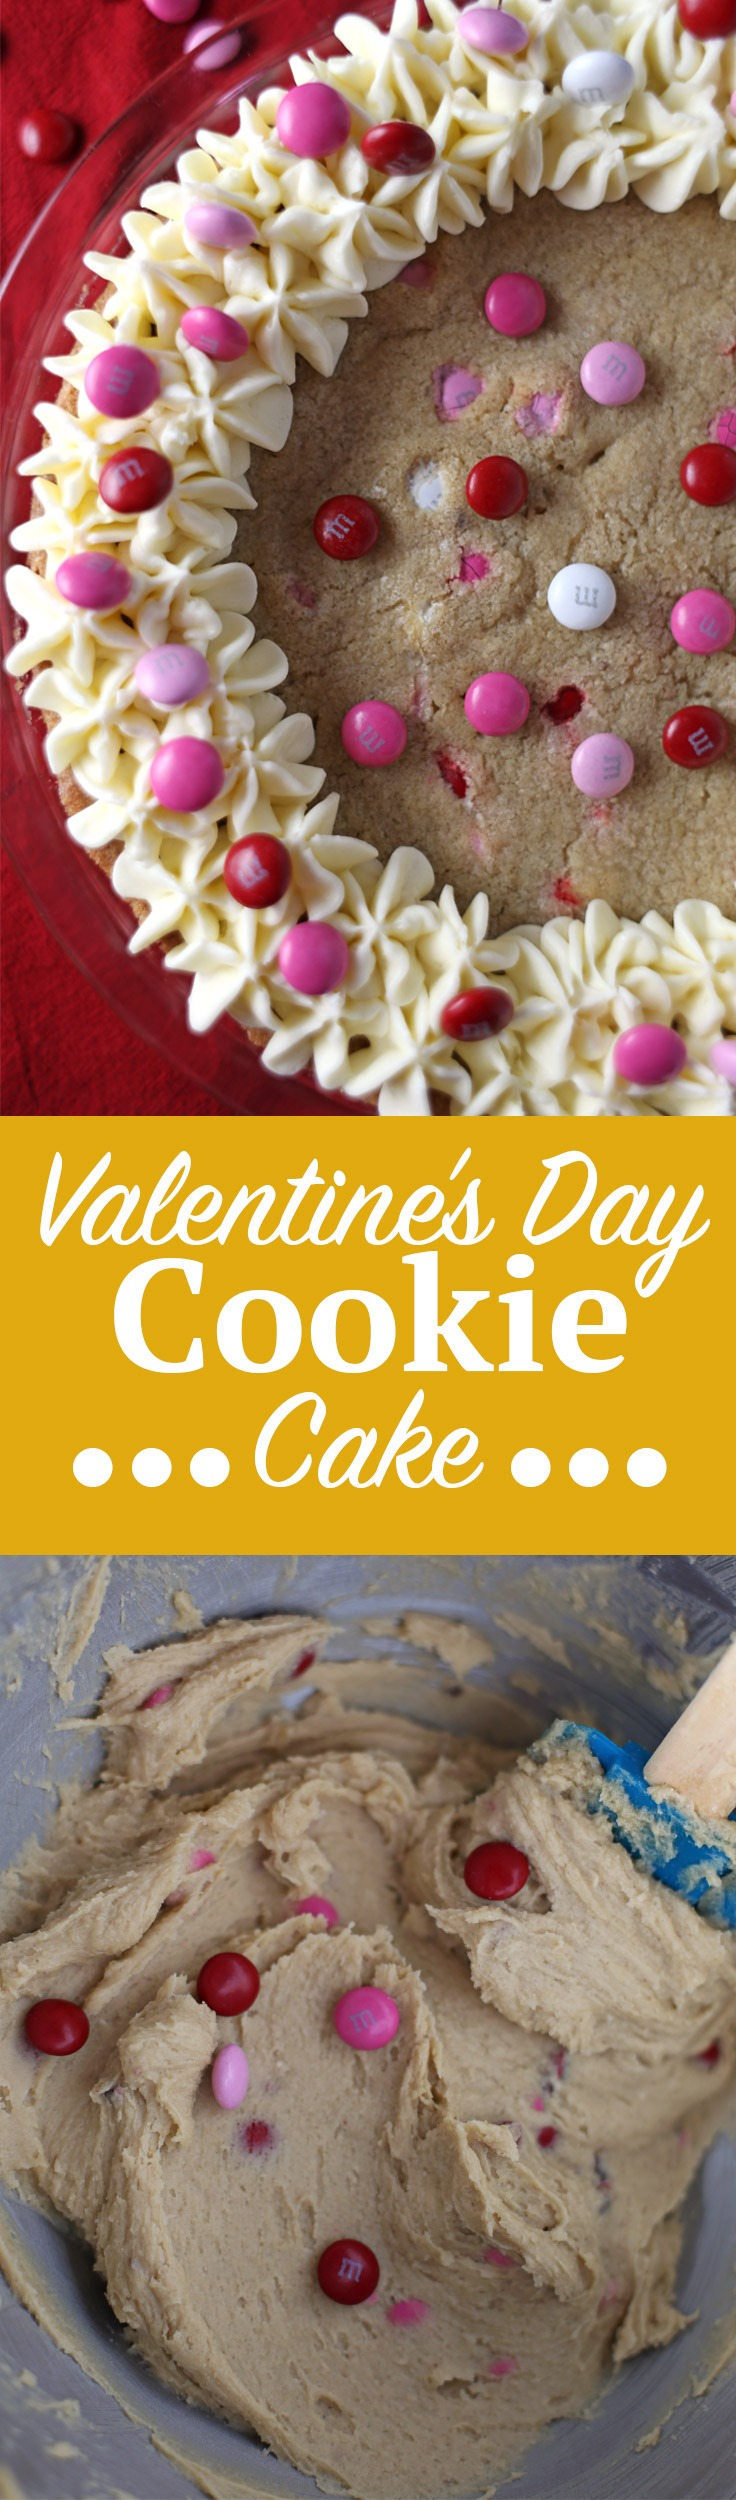 Valentine's Day Cookie Cake. In need of a Valentine's Day dessert recipe? Here's a great option. It's like a Valentine's Day cookie recipe and cake recipe combined into one! Soft and chewy cookie, baked in a pie dish with a sprinkle of festive M&M's®. Click through for the full recipe! | SeasonlyCreations.com | @SeasonlyBlog